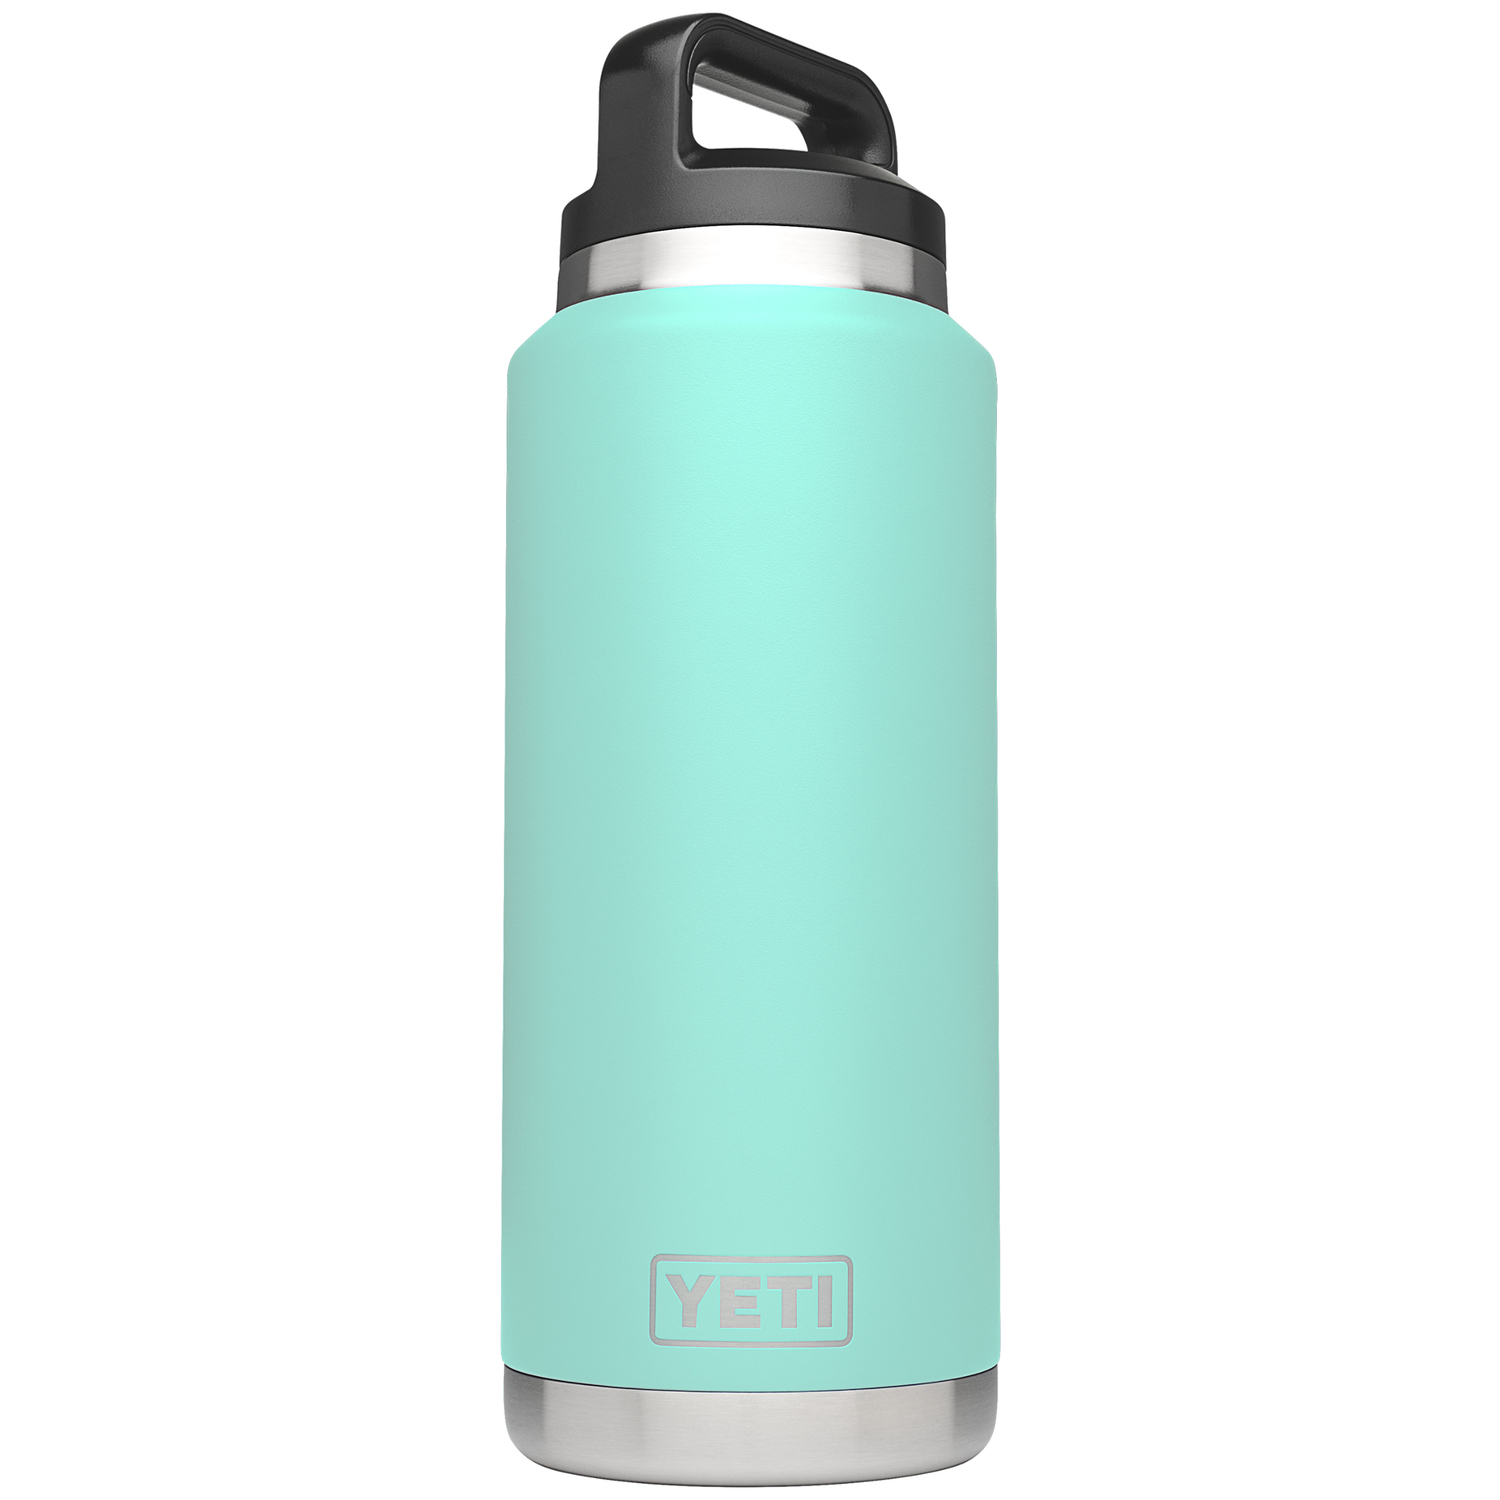 YETI  Rambler  Stainless Steel  Insulated Bottle  BPA Free 36 oz. Seafoam Green